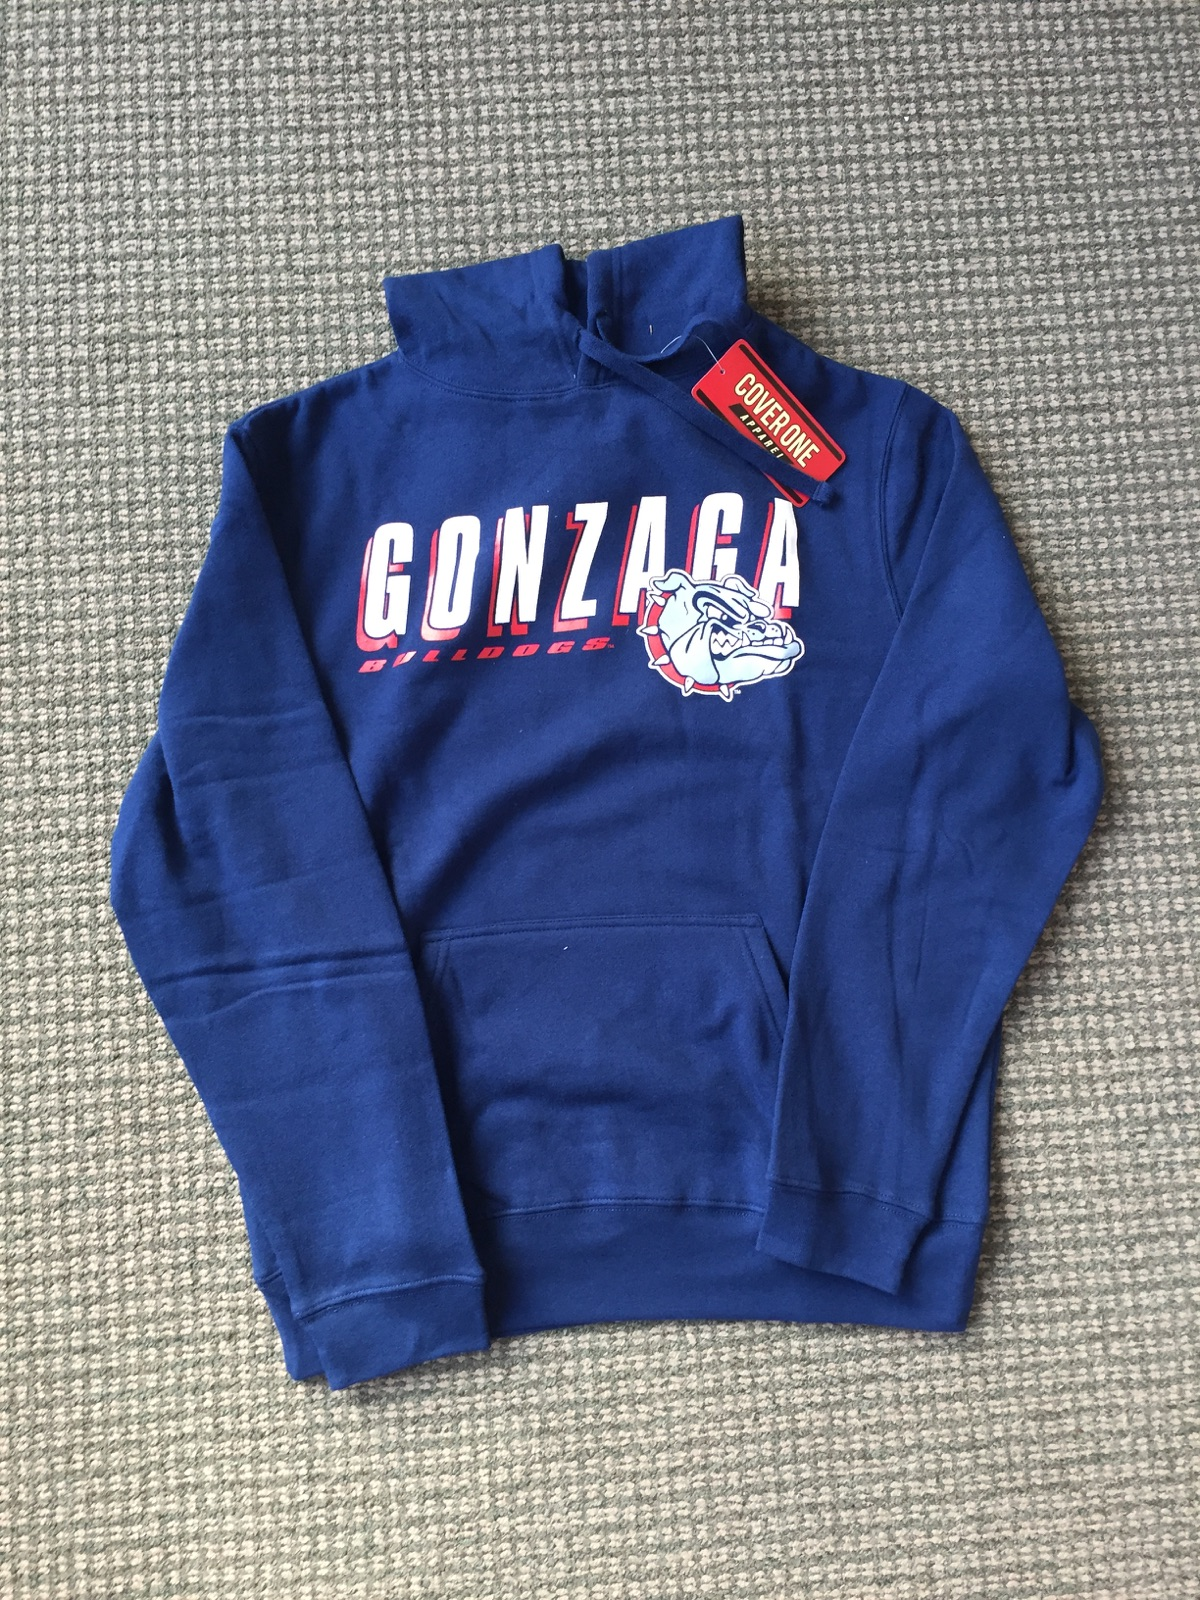 Gonzaga Hooded Sweatshirt Size XL